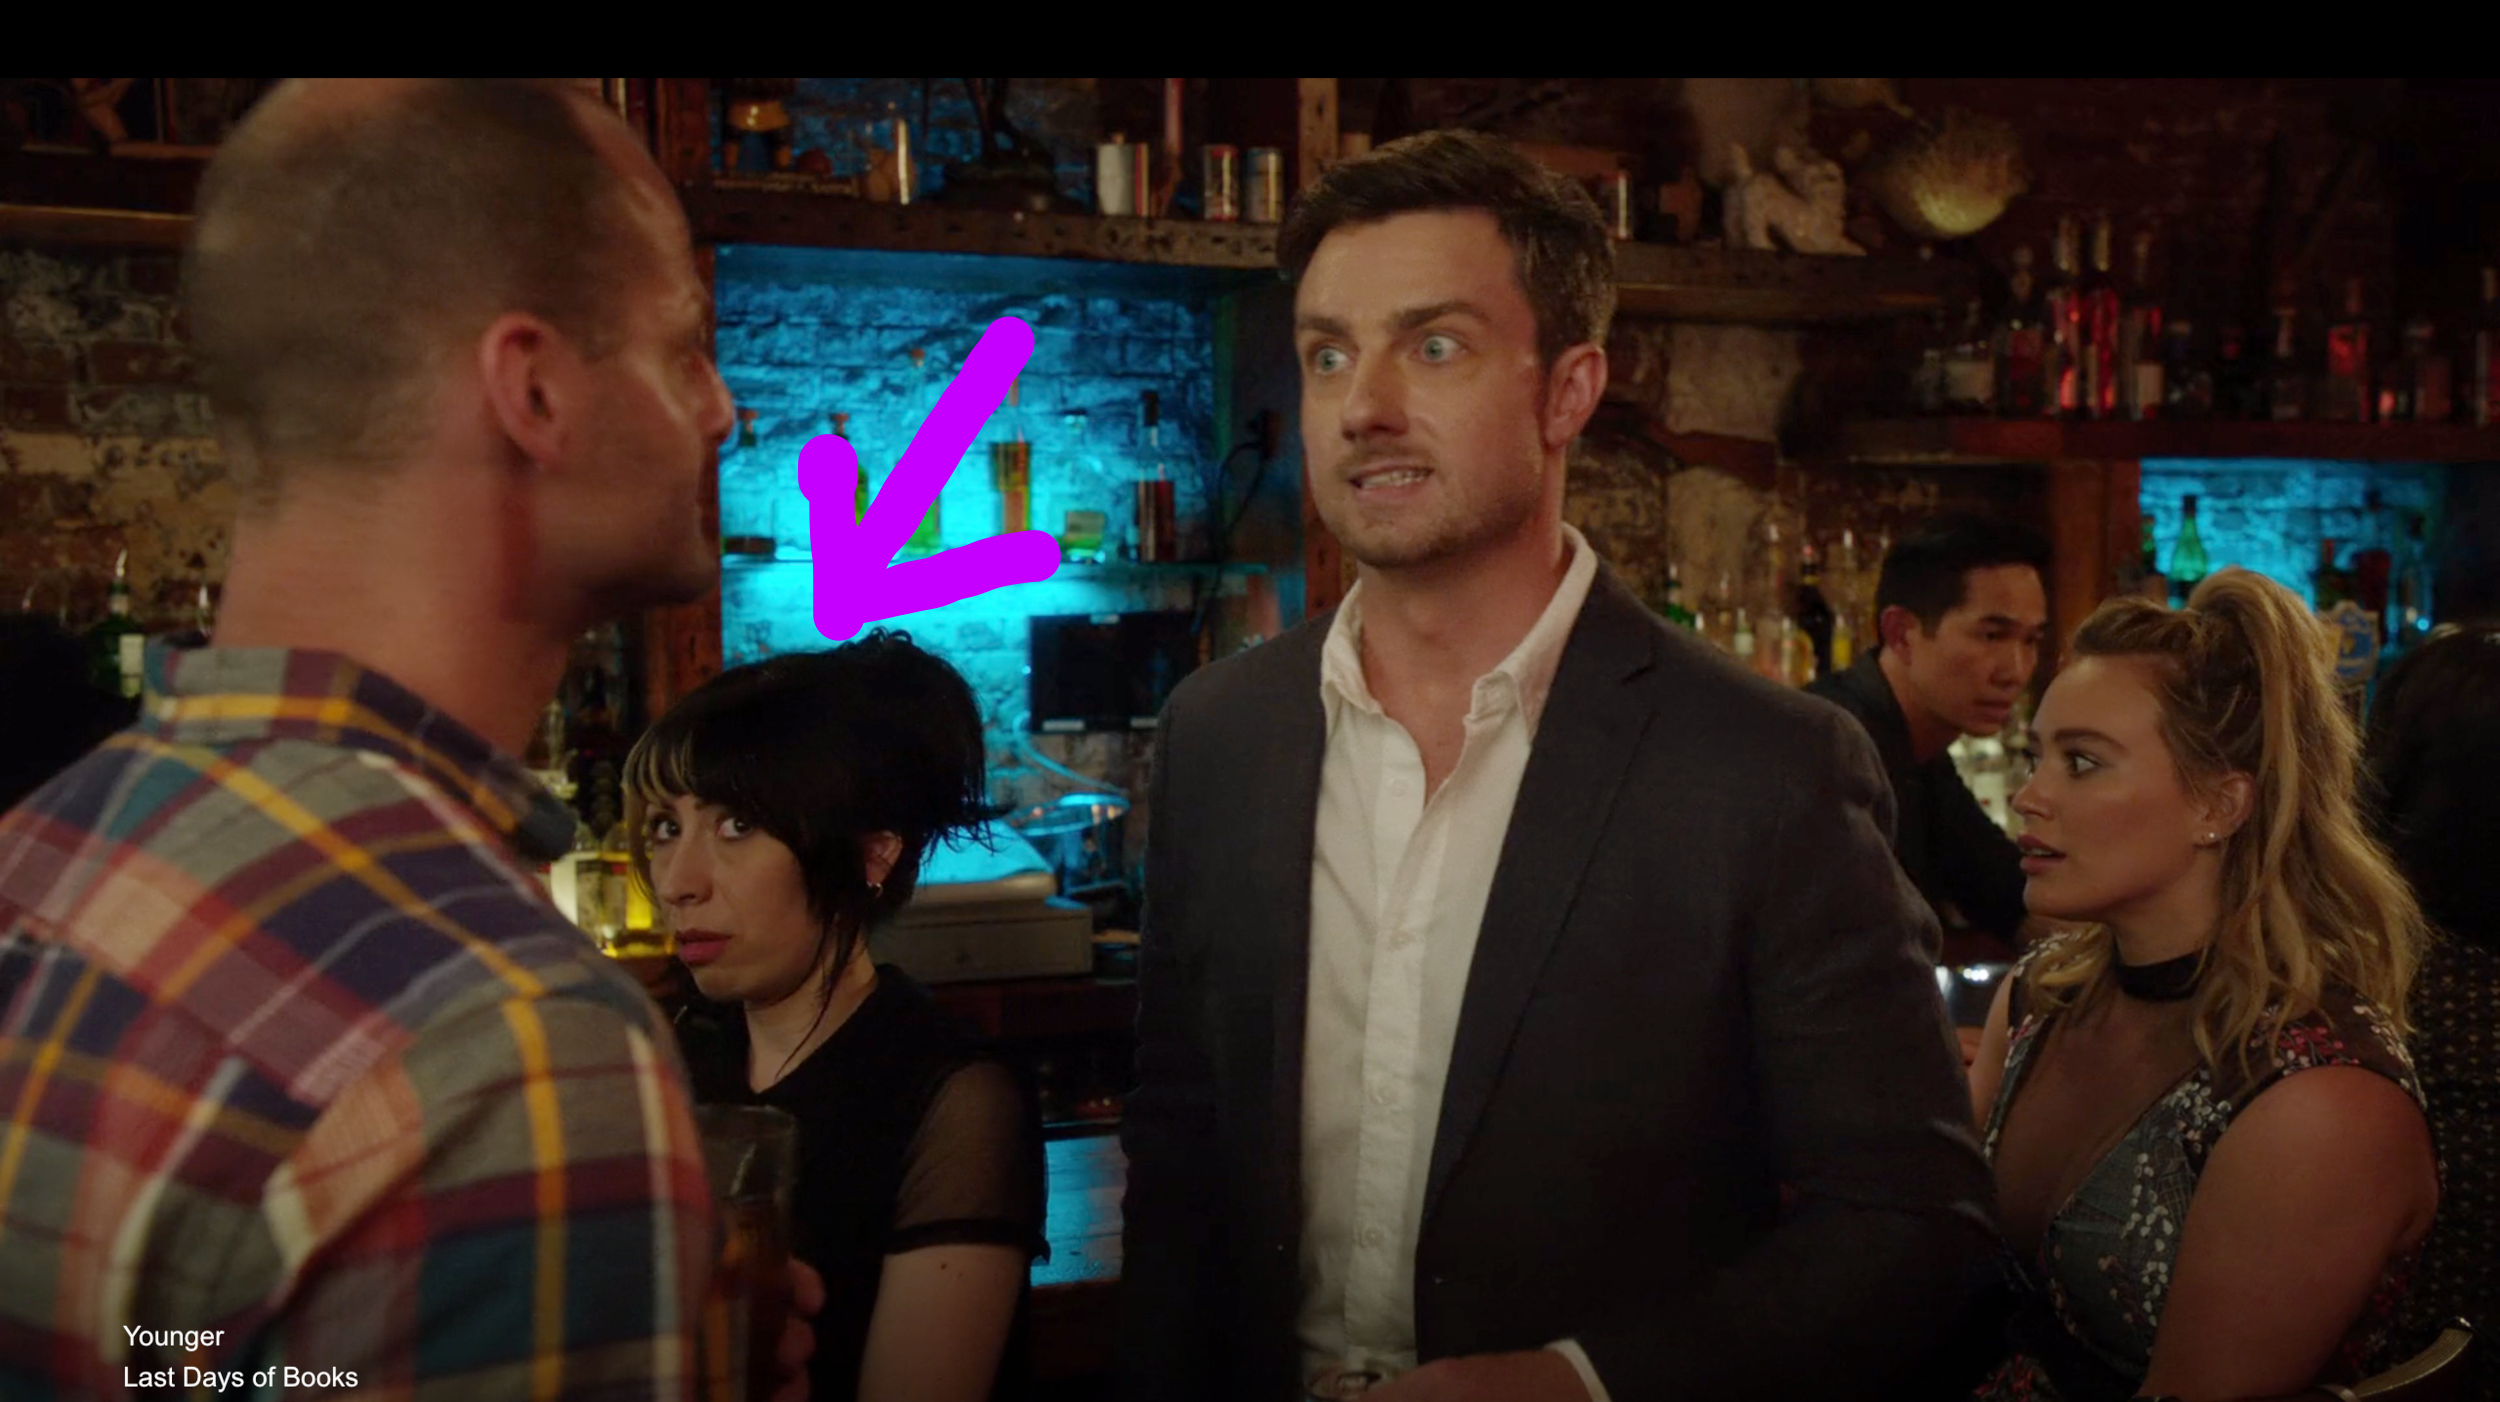 My appearance on TV Land's 'Younger'.